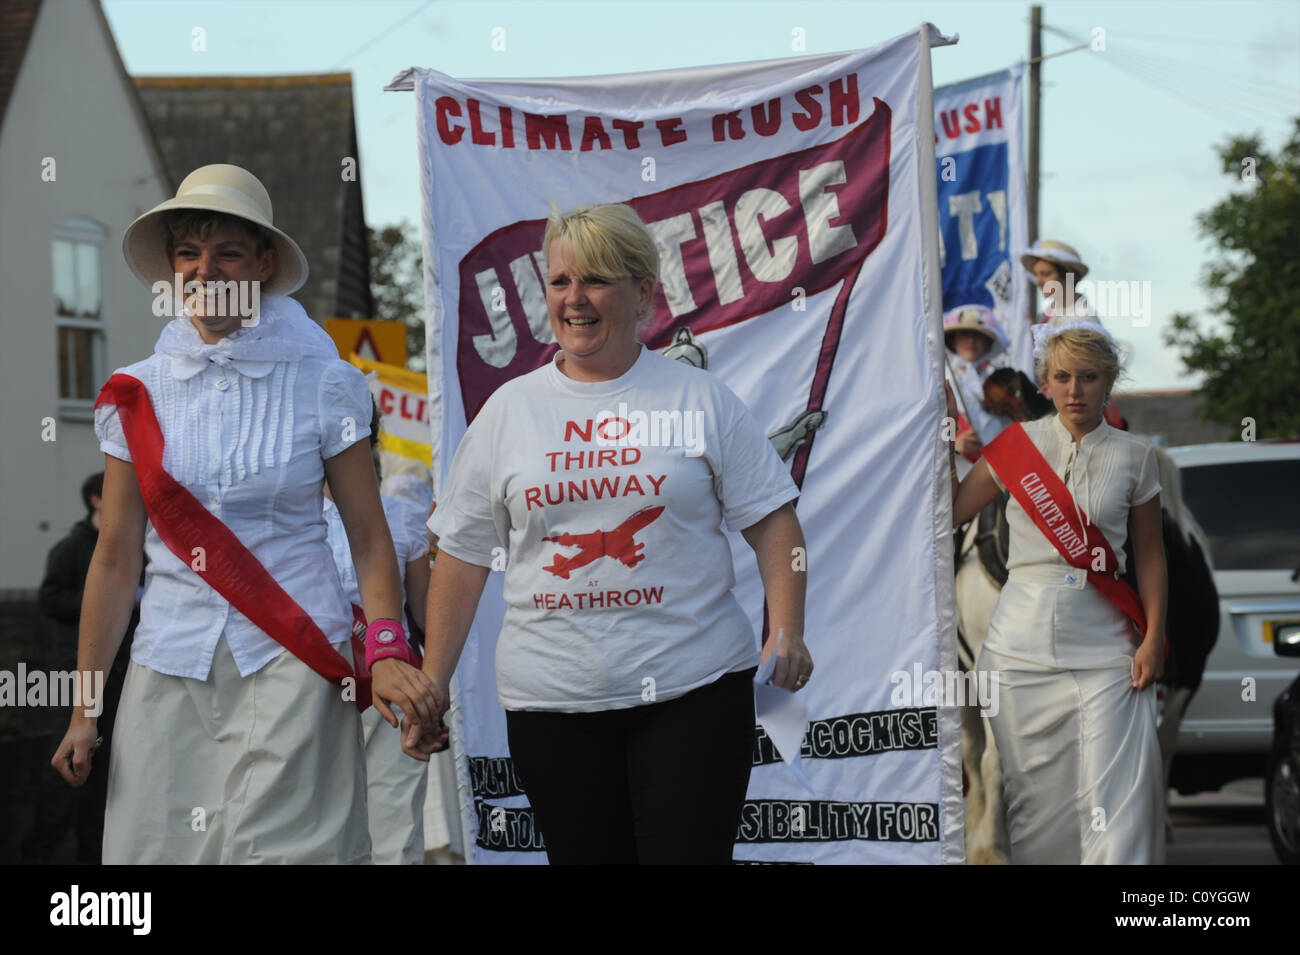 Members of Climate change Campaign Group Climate Rush with Residents of Sipson village protest against Heathrow - Stock Image